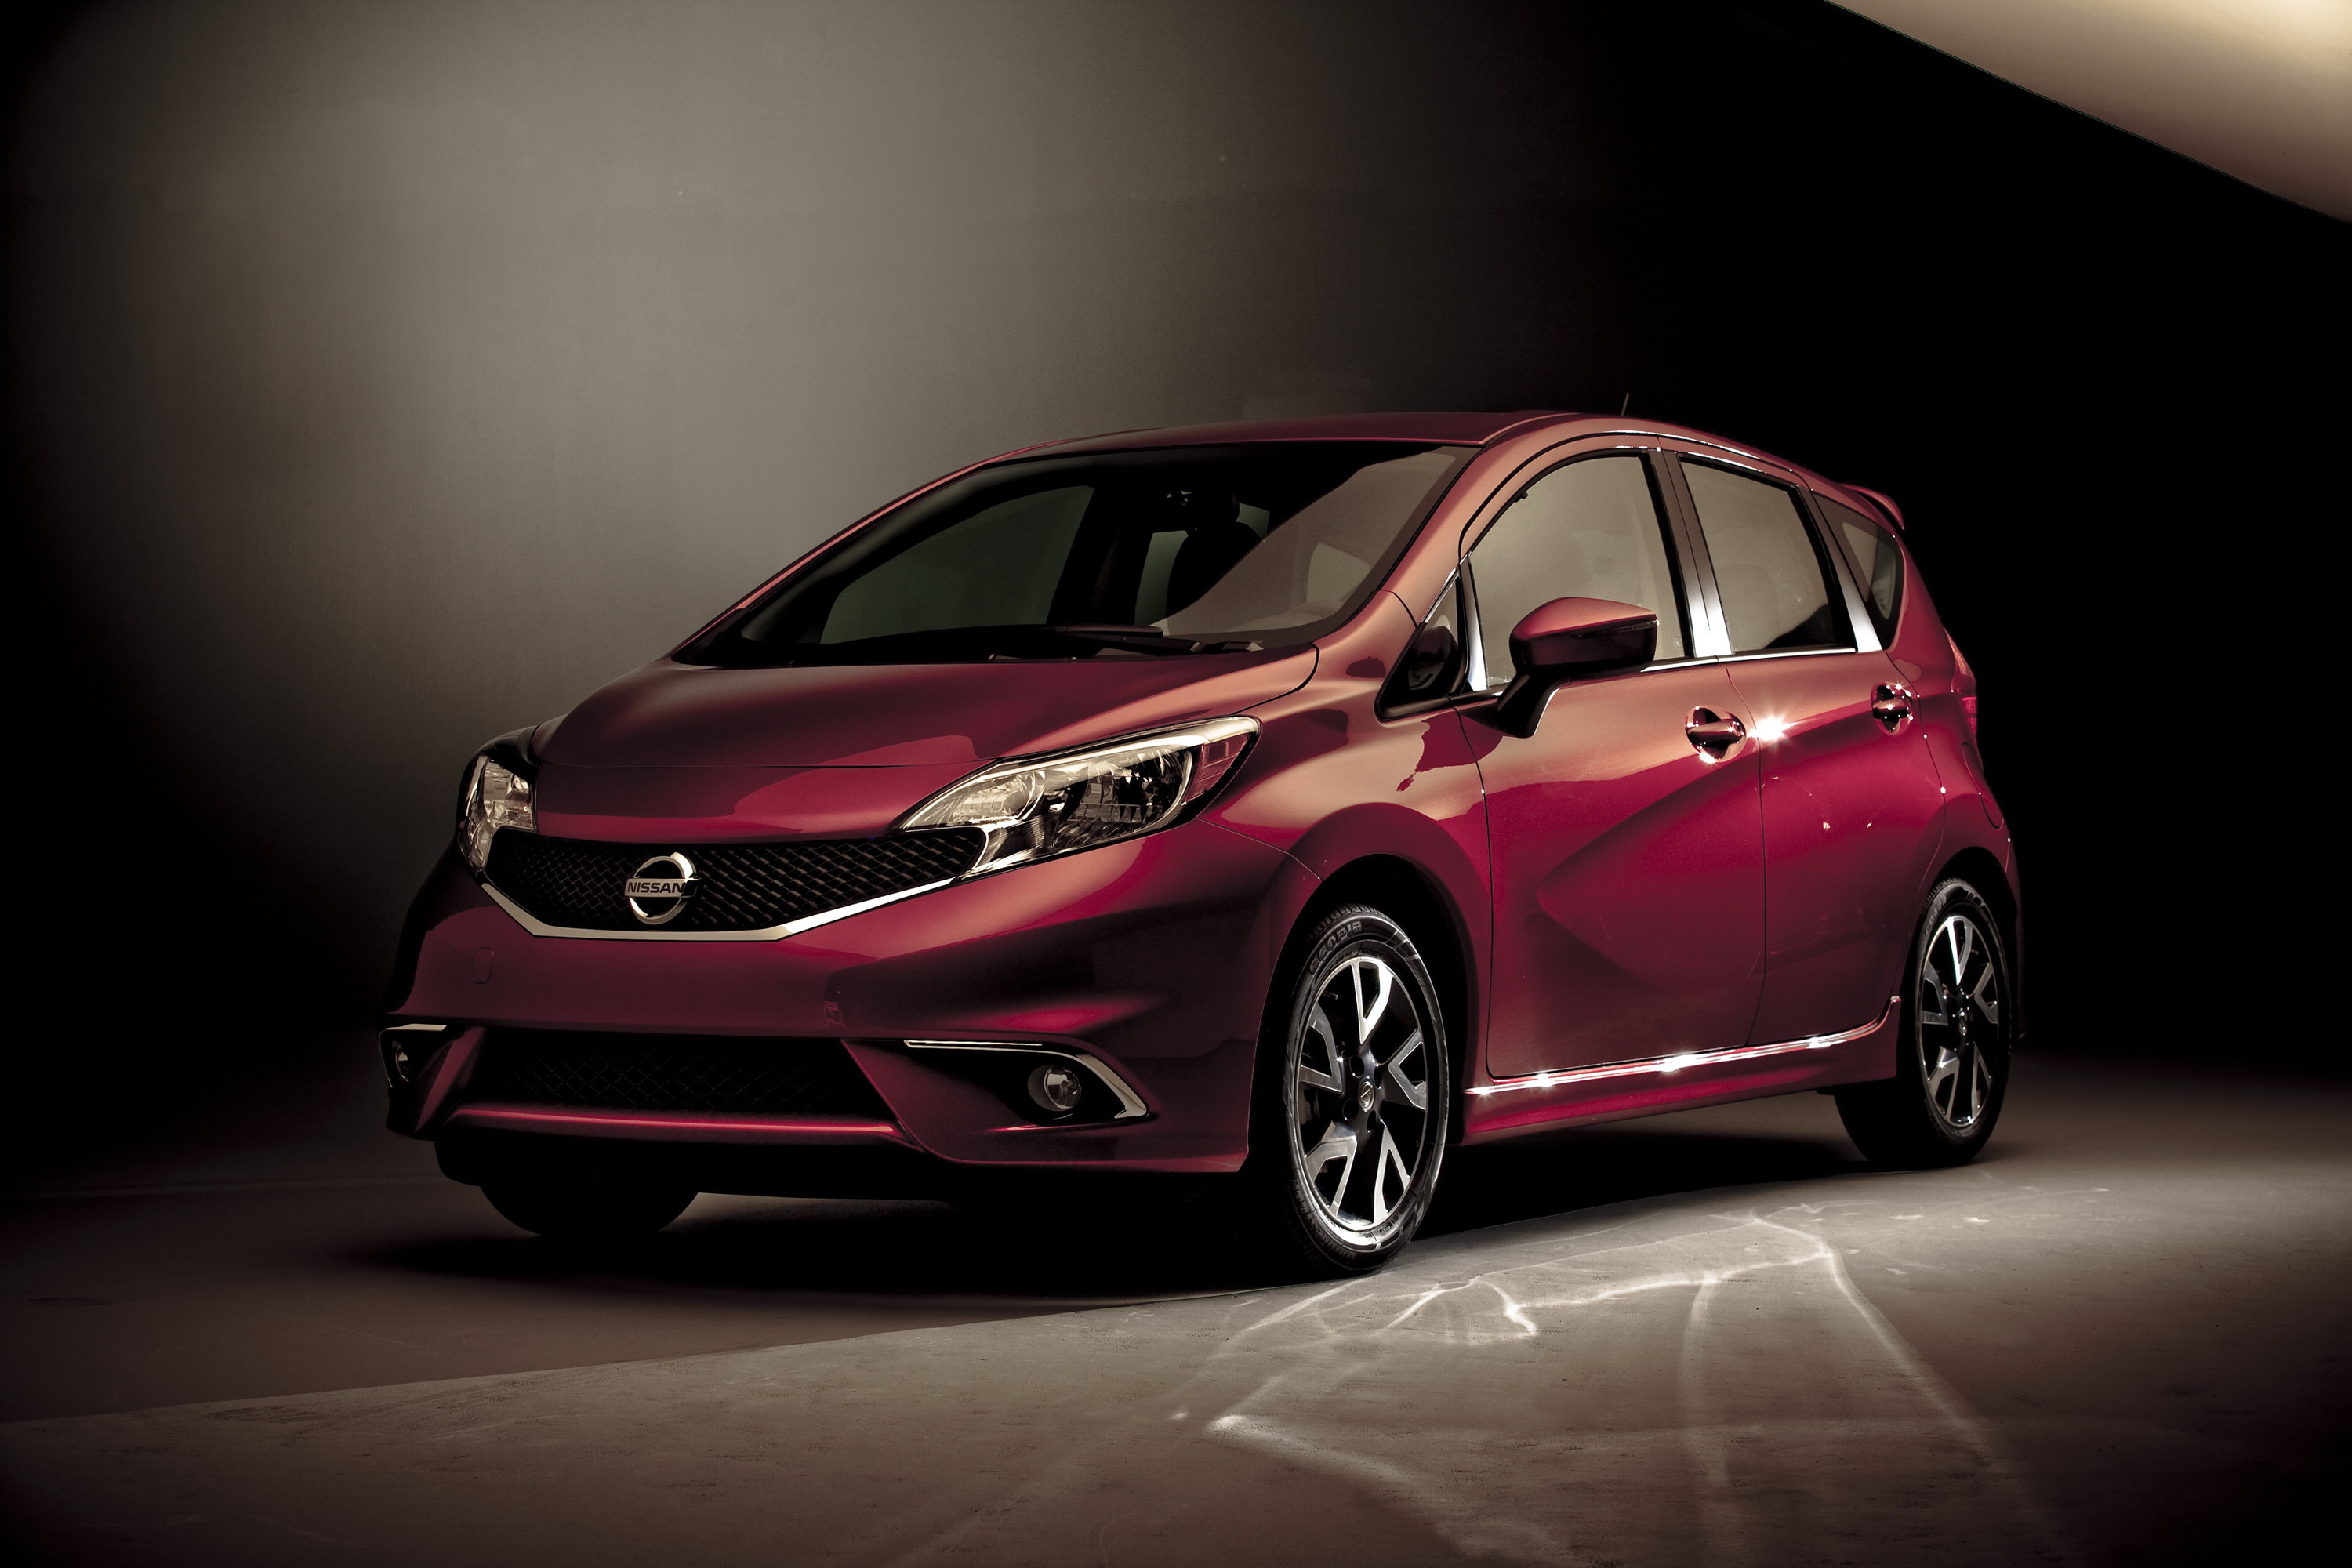 hatchback listings blutooth full camra versa img nissan note backup certified wheels alloy